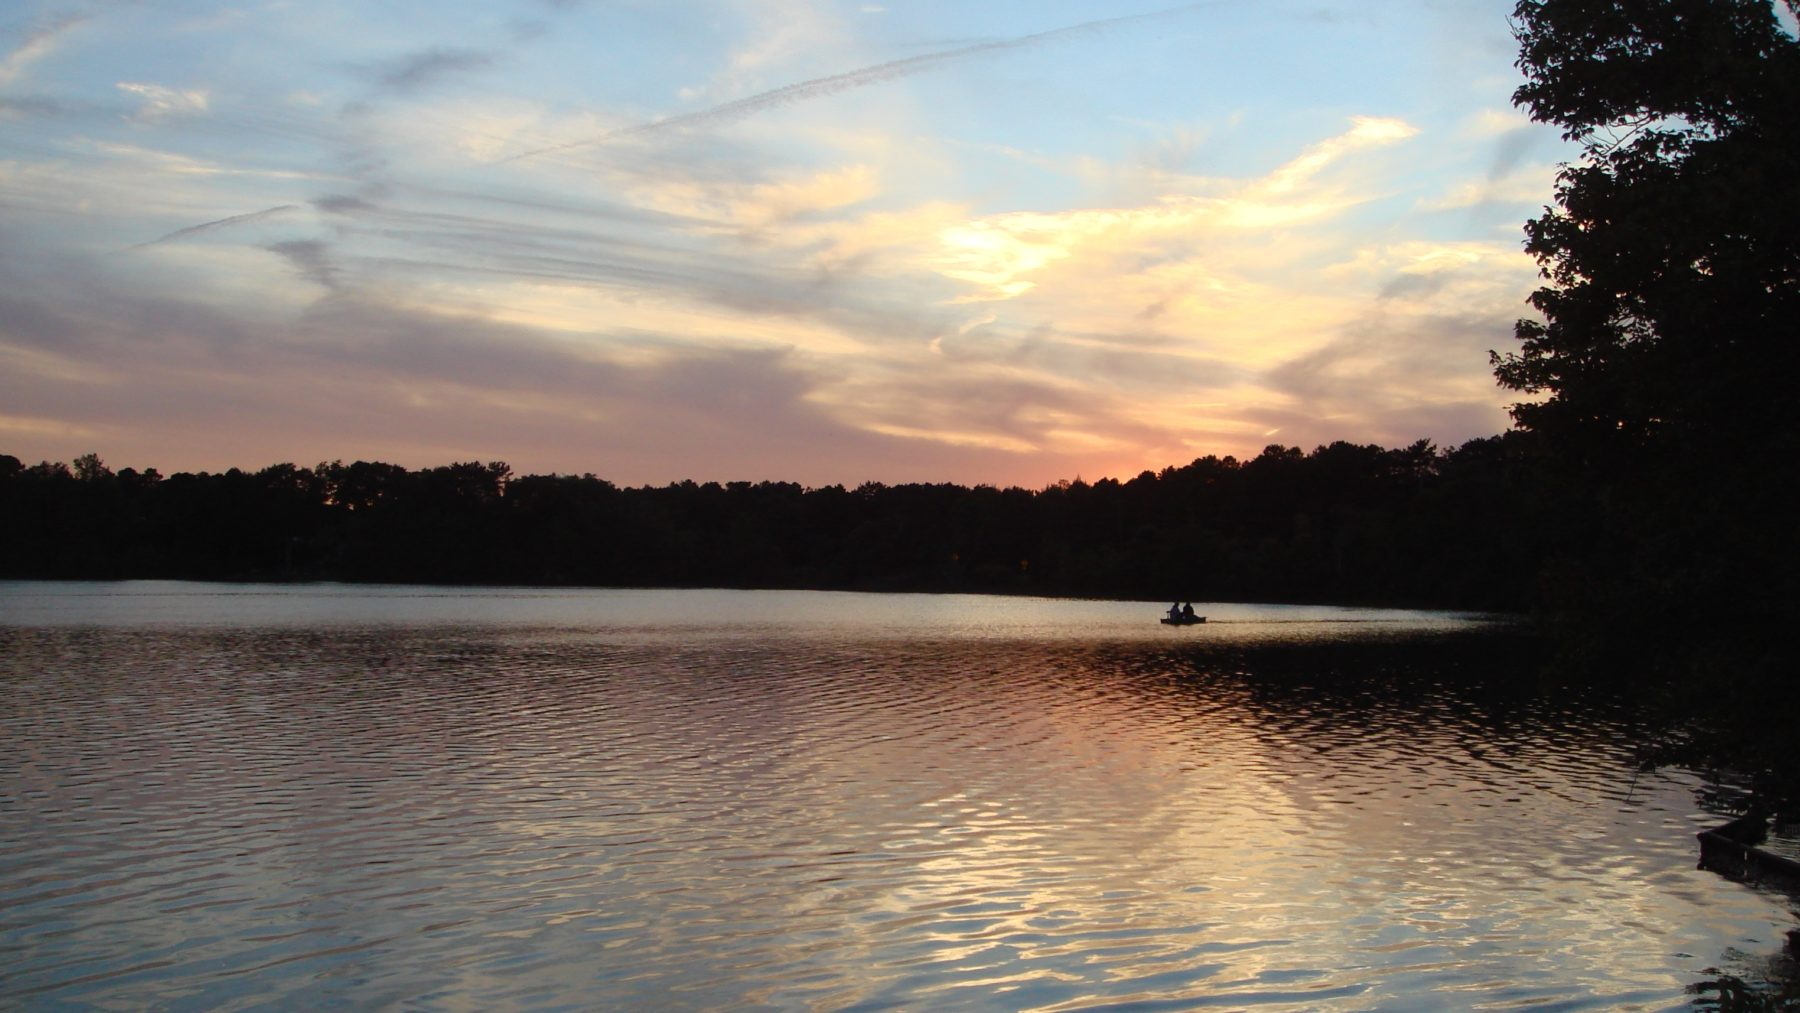 Sunset over a lake in the Pine Barrens